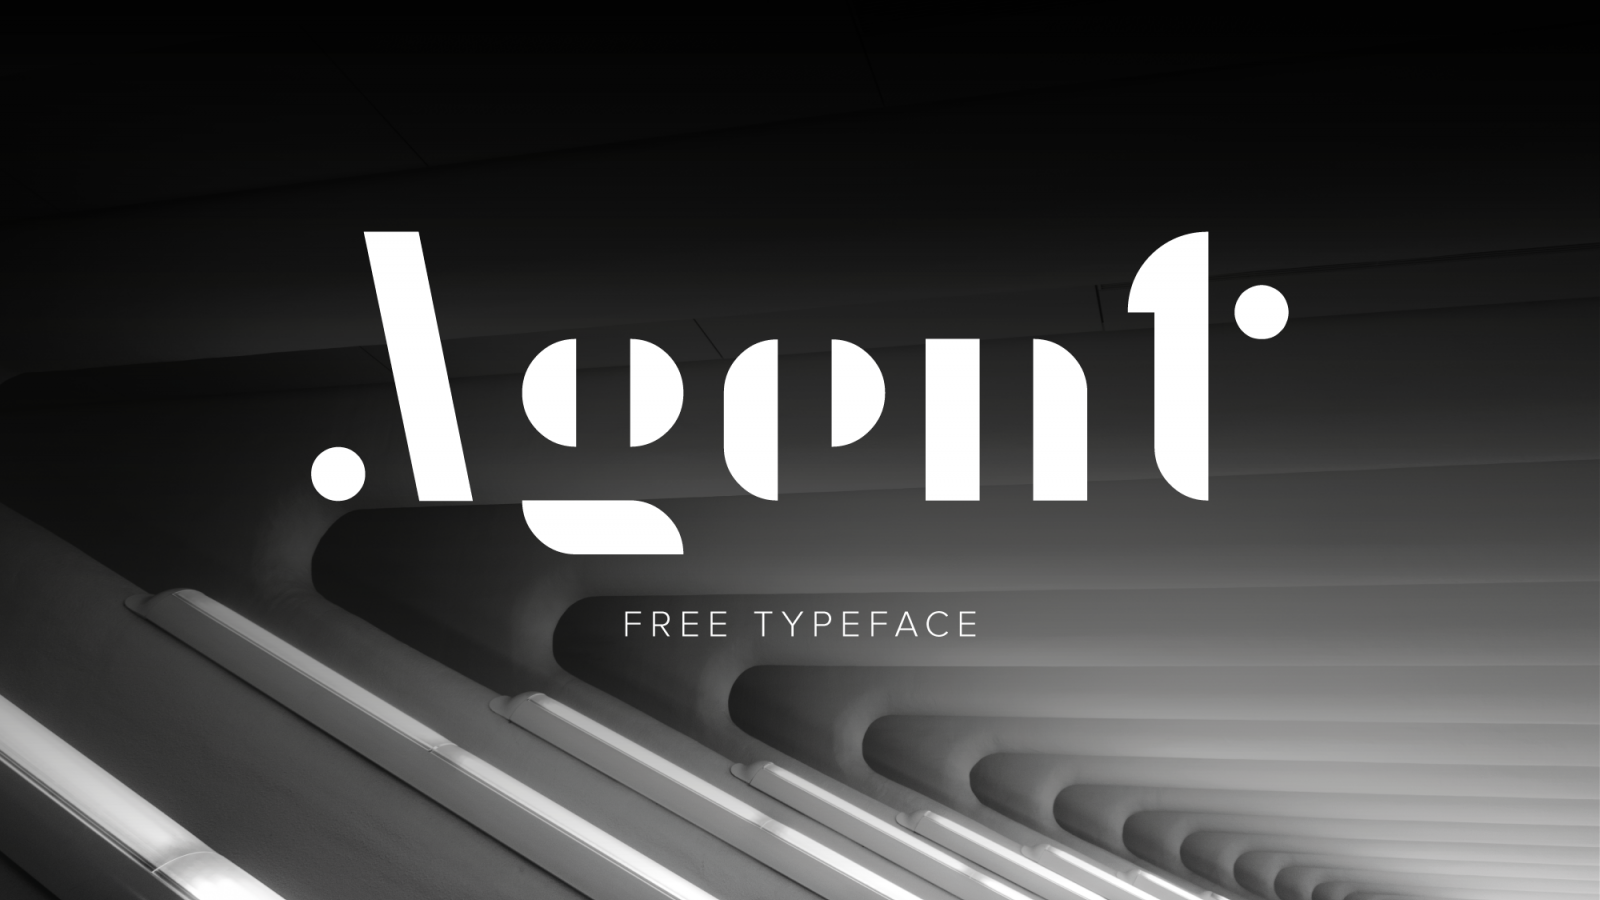 Typography: Agent Free Font